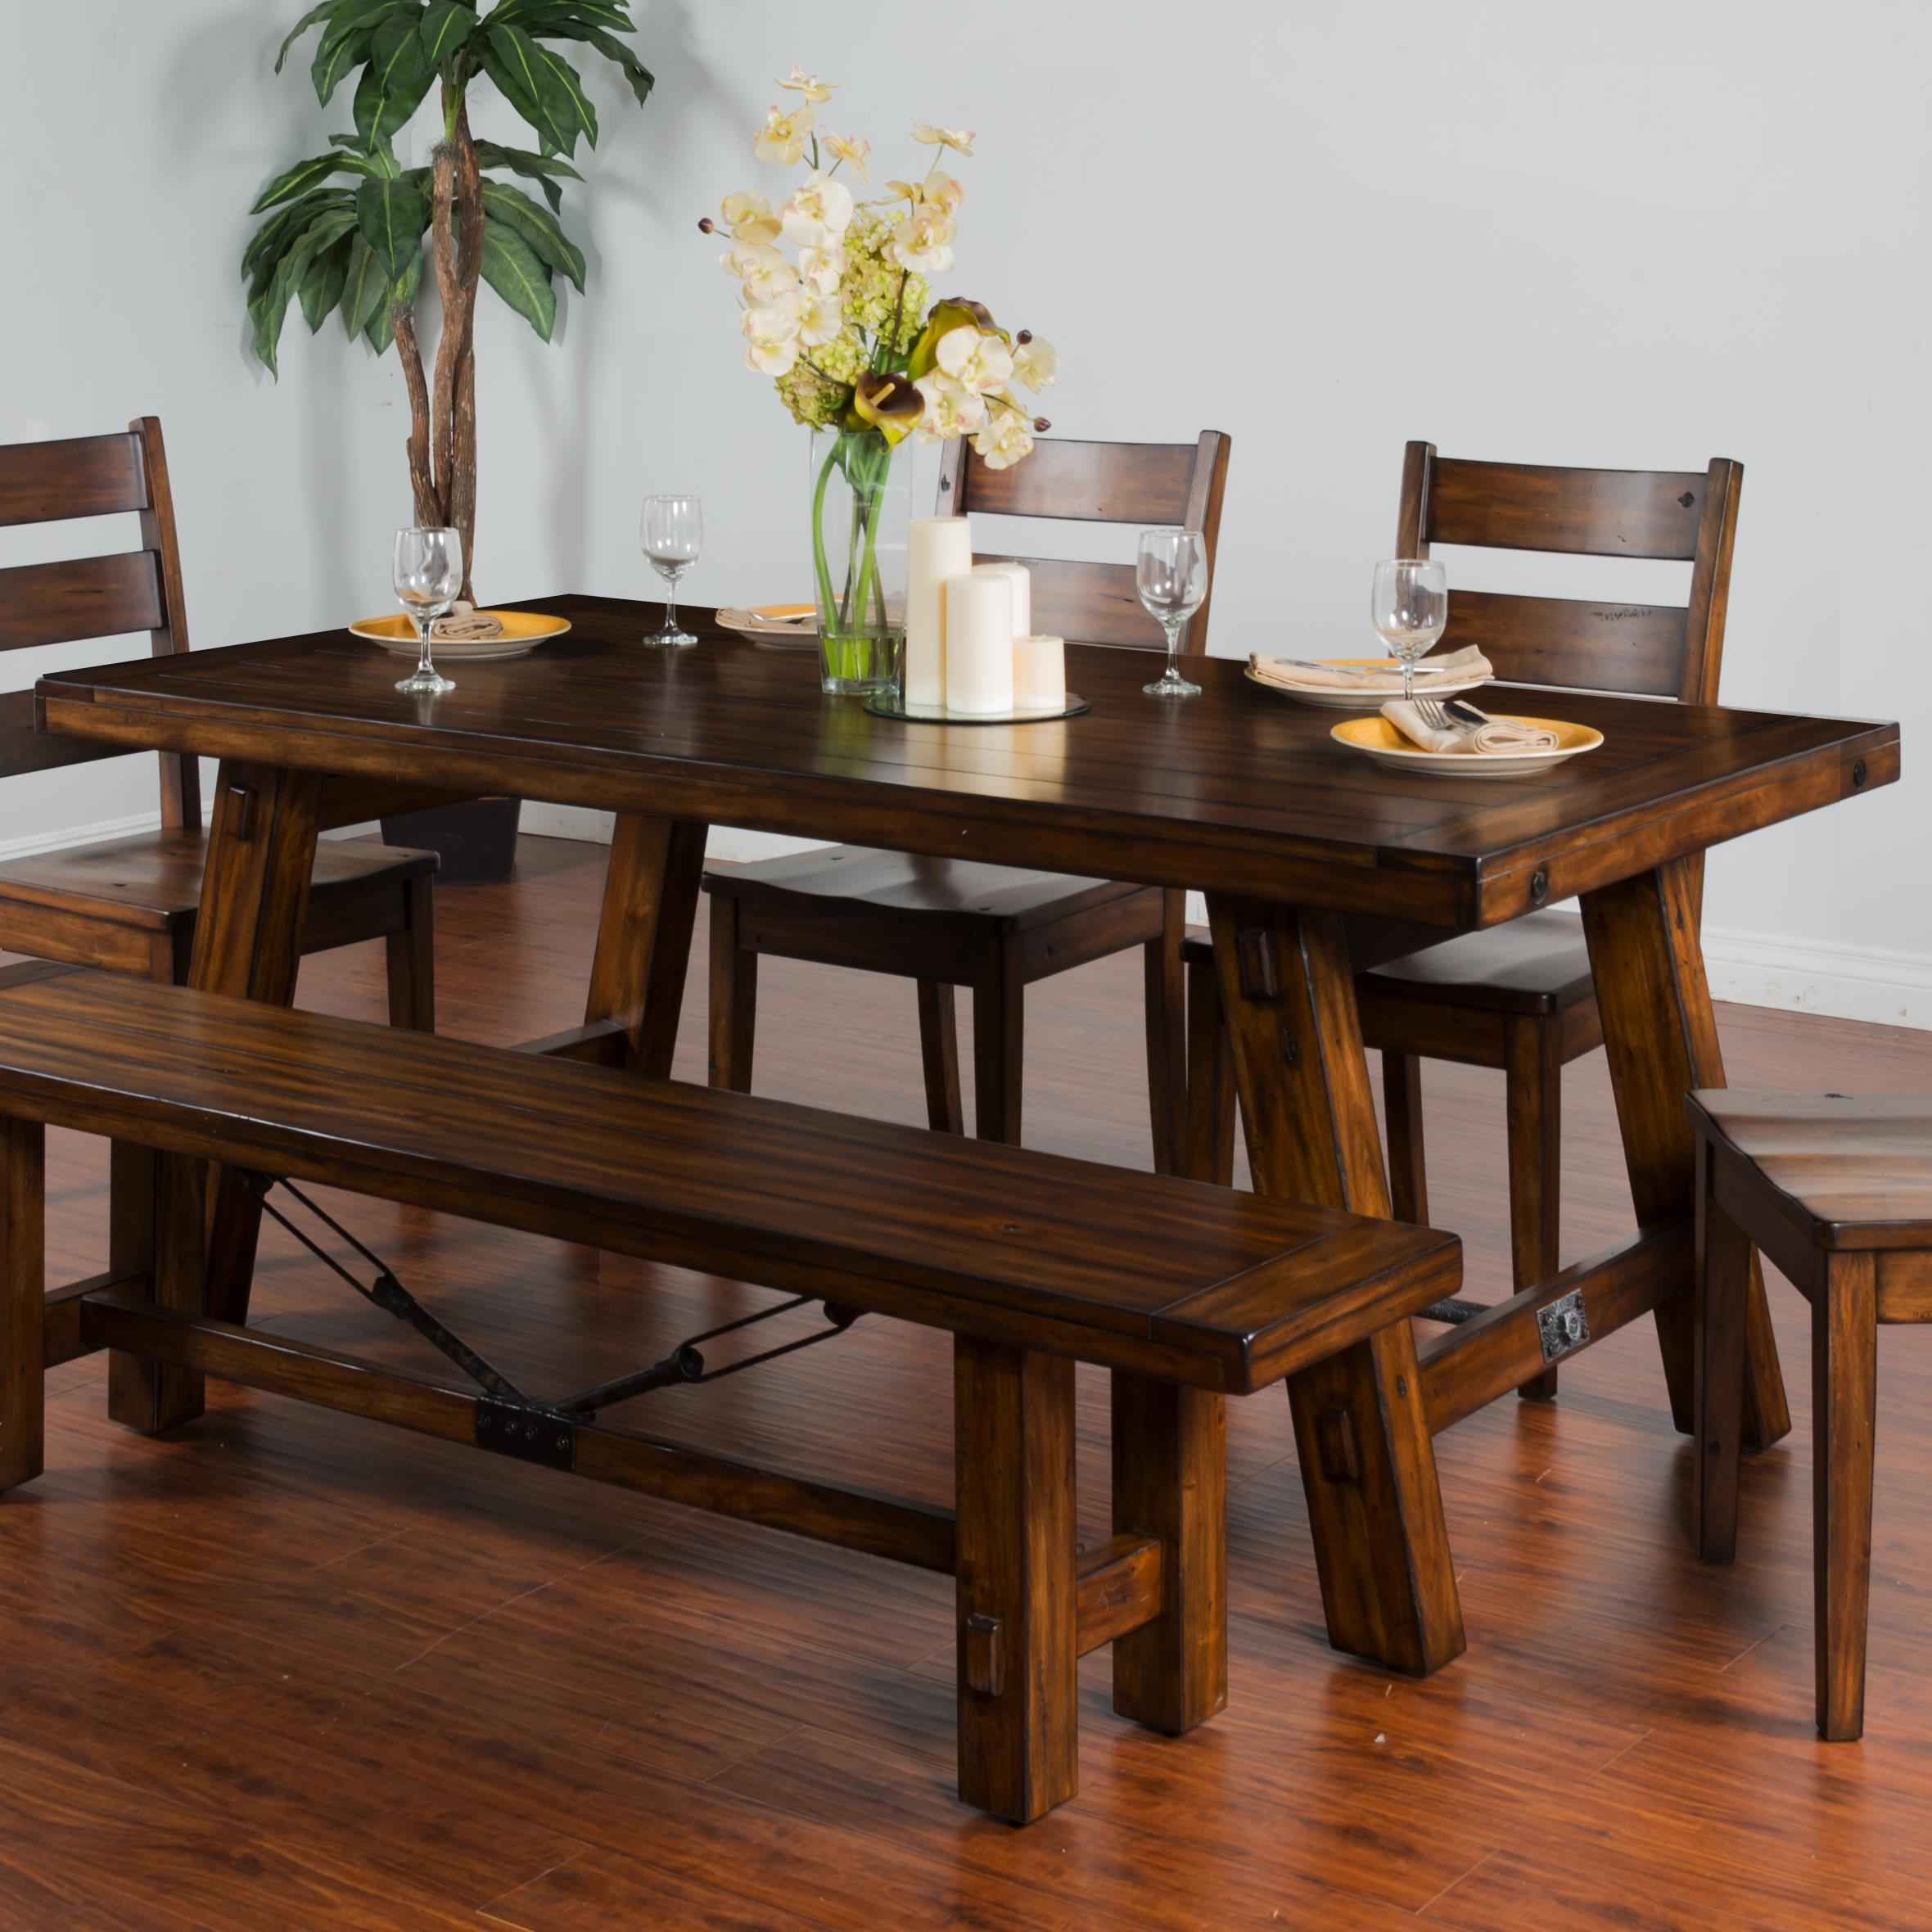 Delicieux By Sunny Designs. Distressed Mahogany Extension Table W/ Turnbuckle Accent